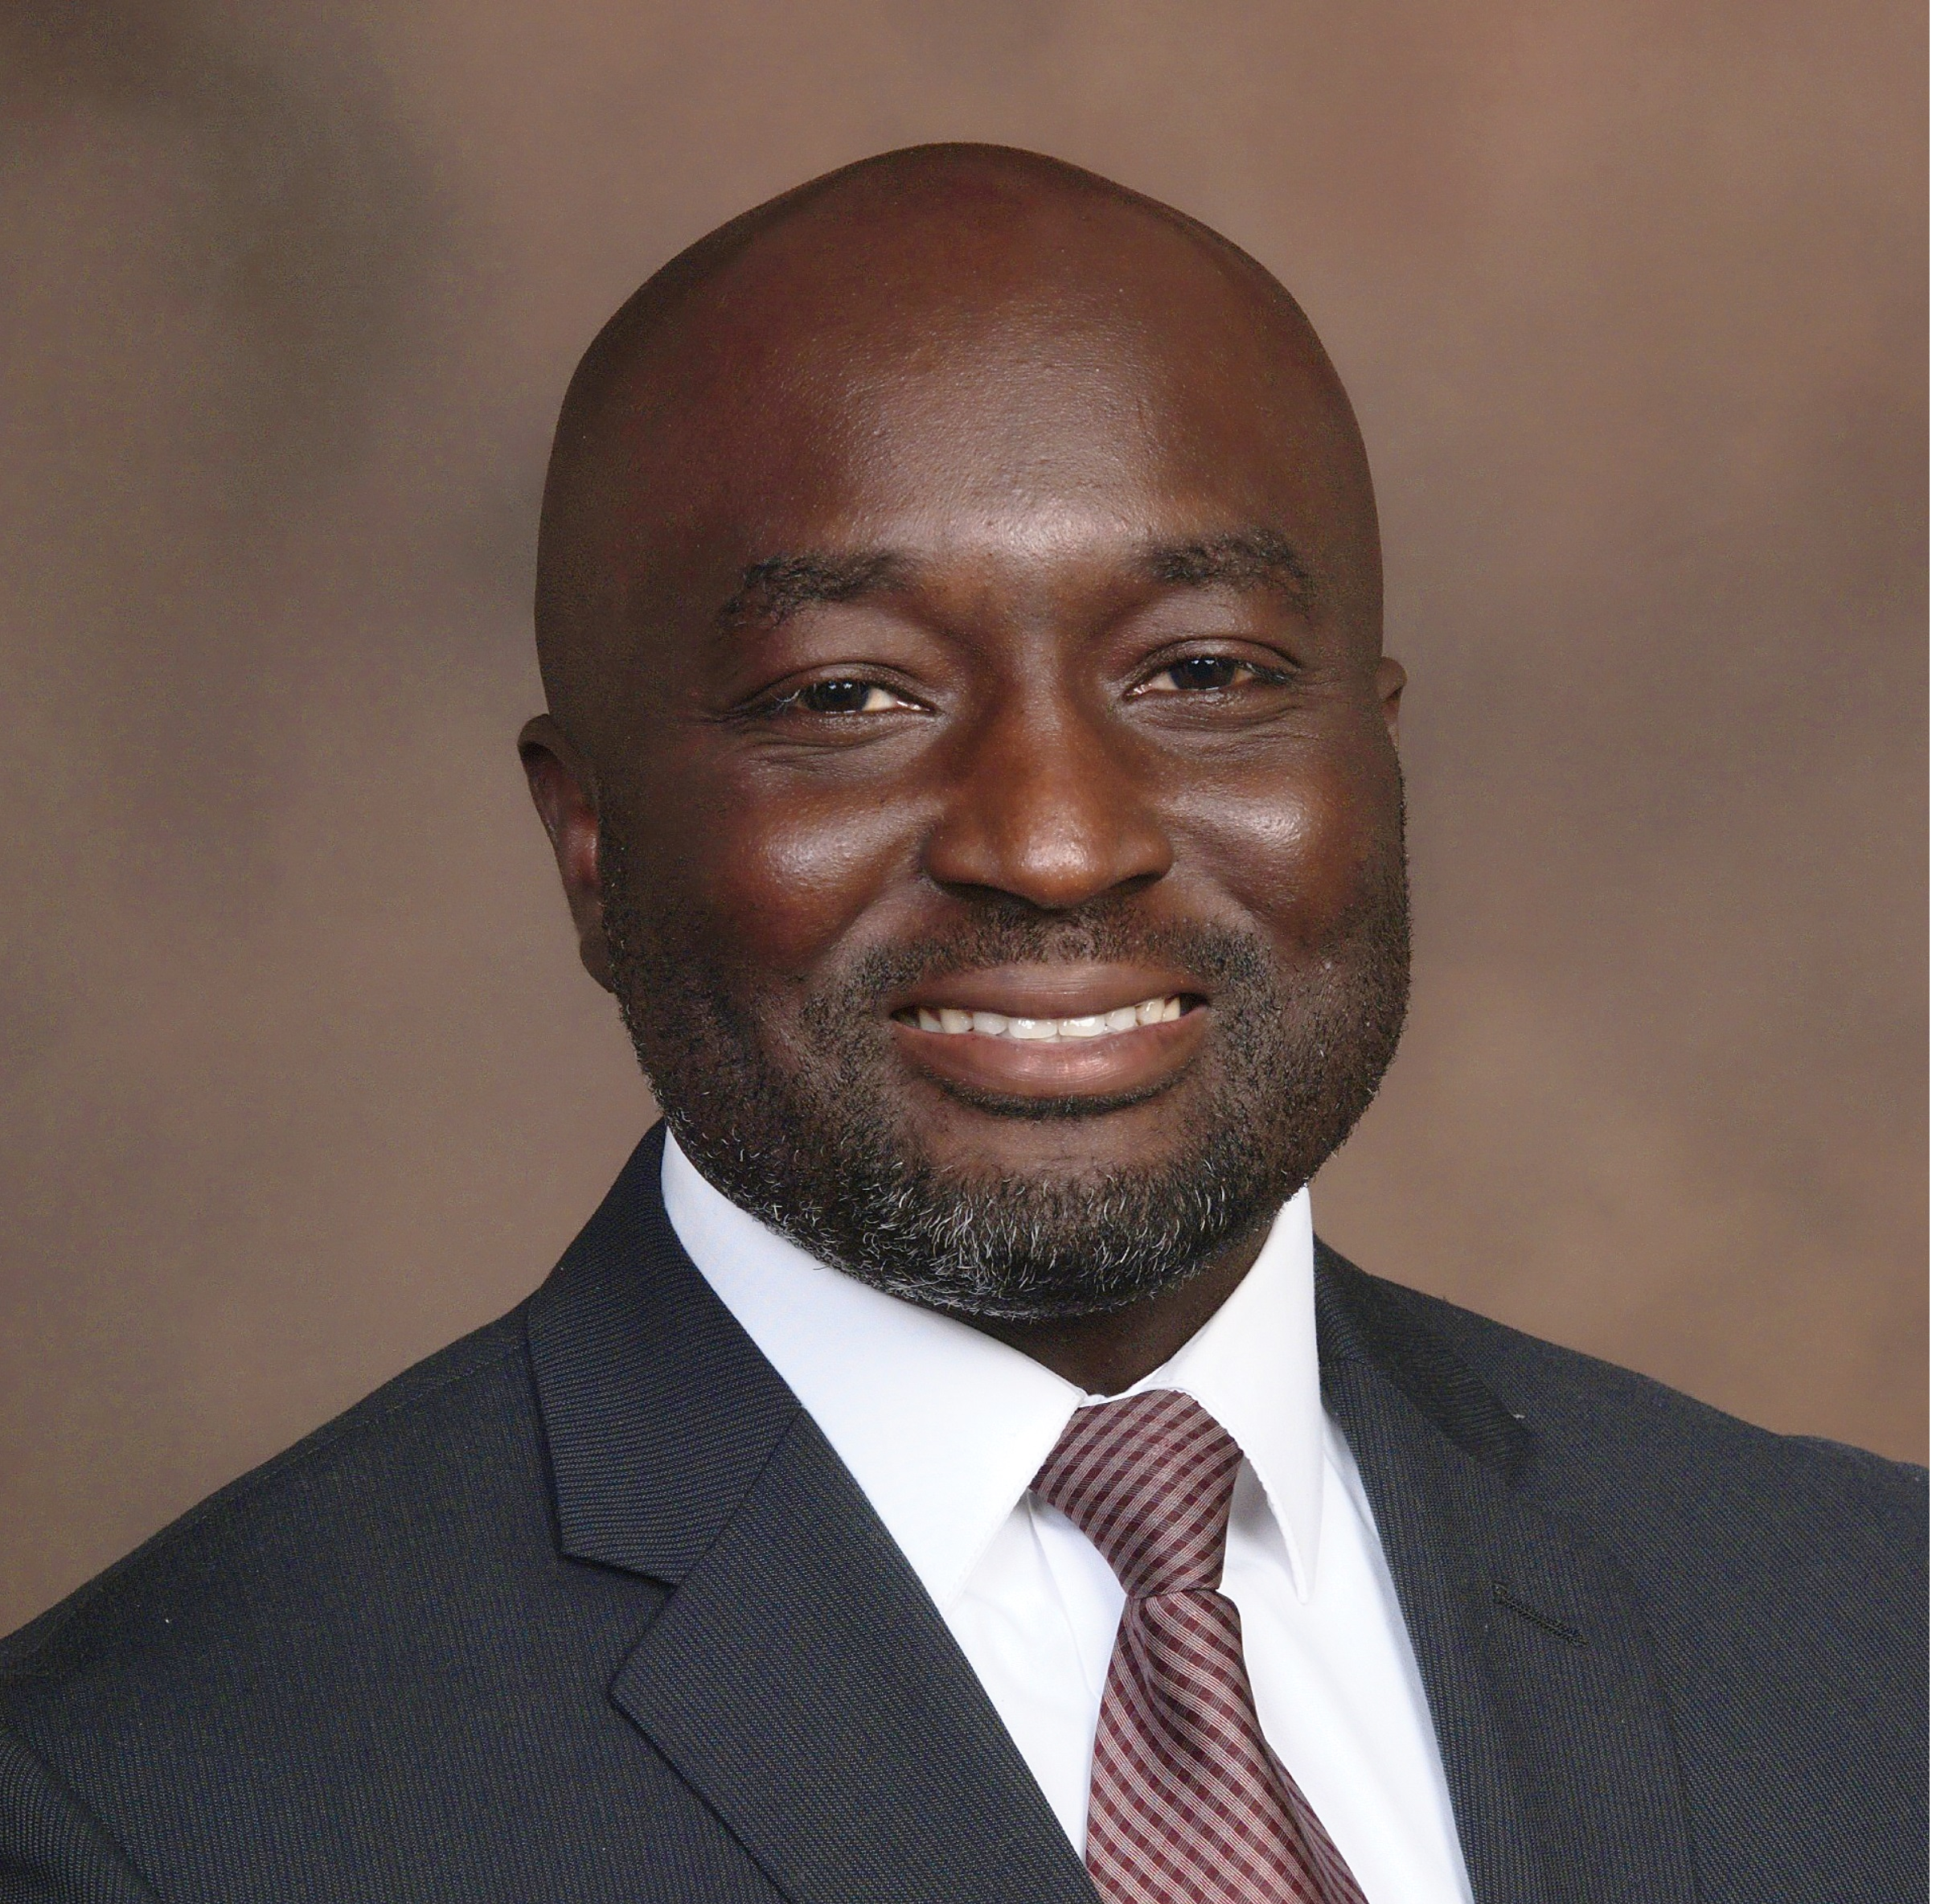 E Yamoah Photo 1 (with tie).jpg